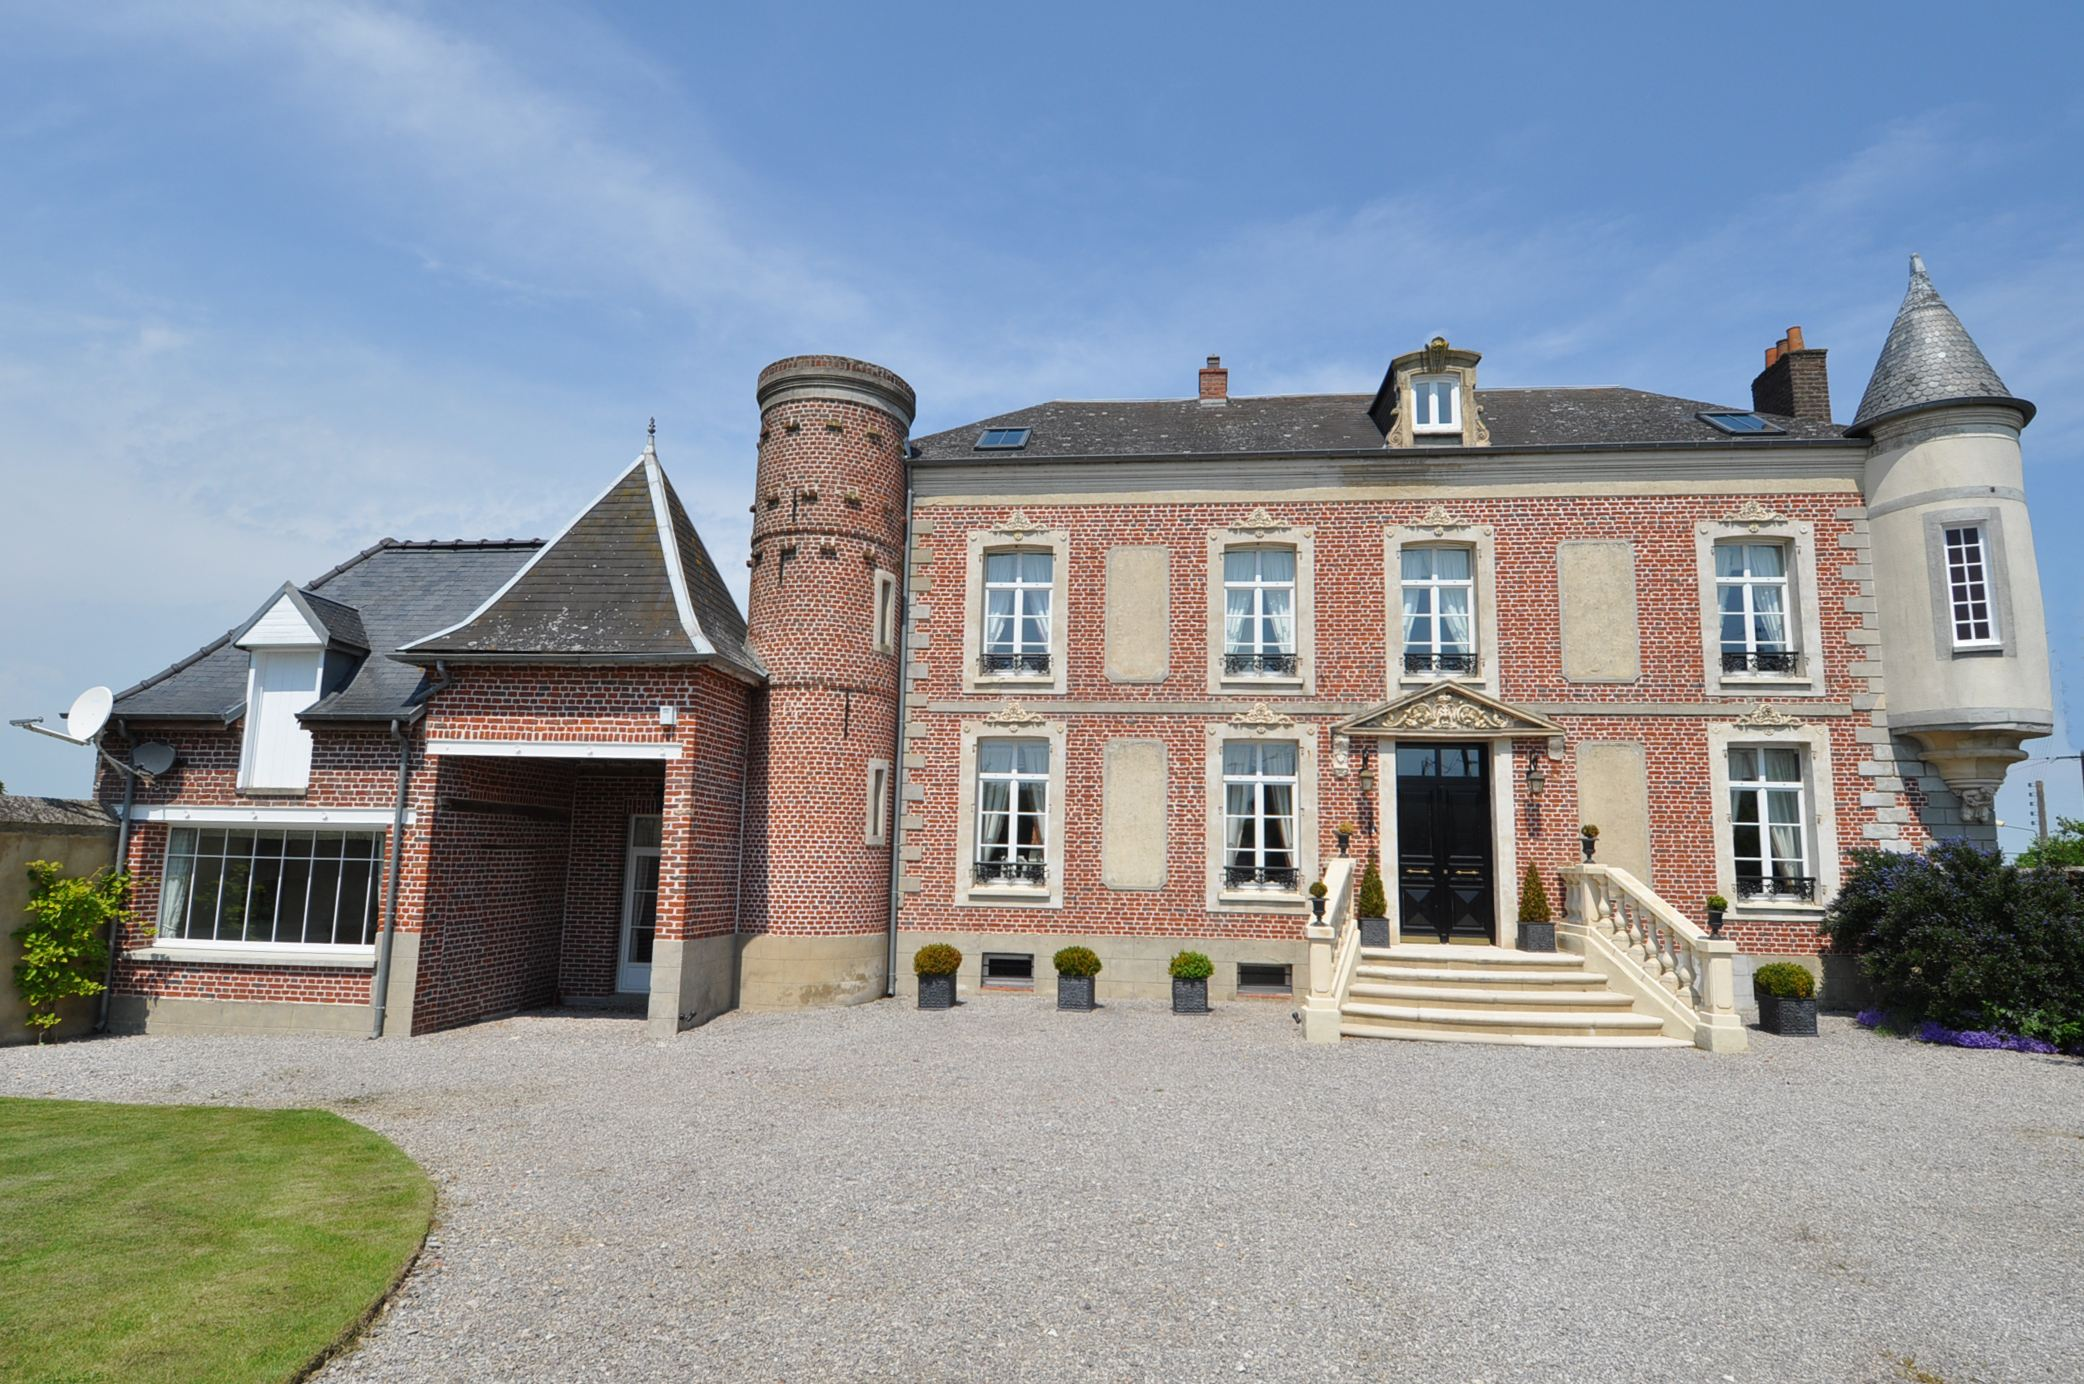 Property For Sale at HARDELOT at 40 kms, beautiful XIXth Manor renovated, 565 m2, 6 bedrooms